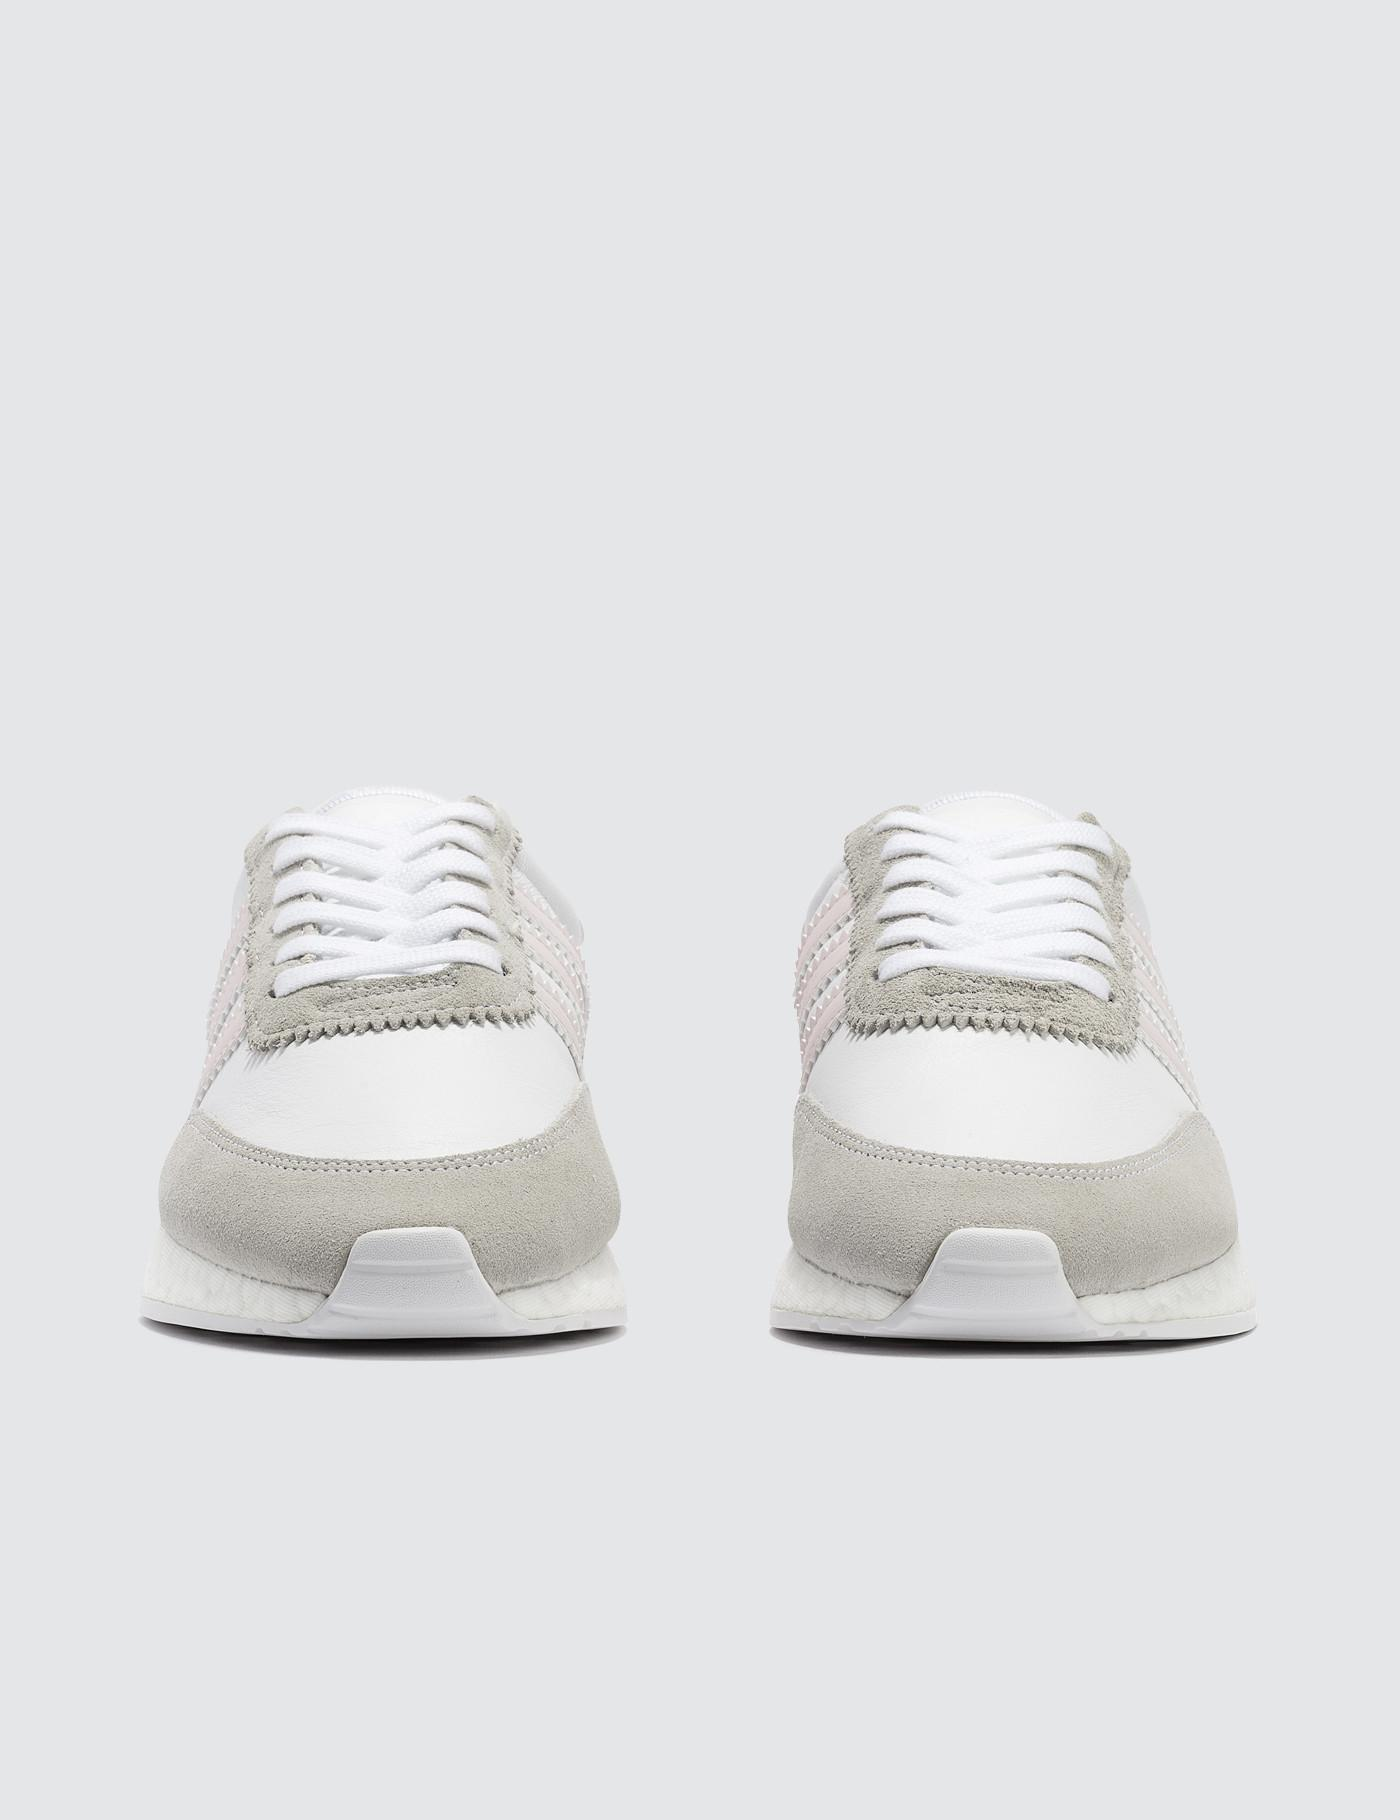 separation shoes 7294b eda22 adidas Originals I-5923 W in White - Lyst